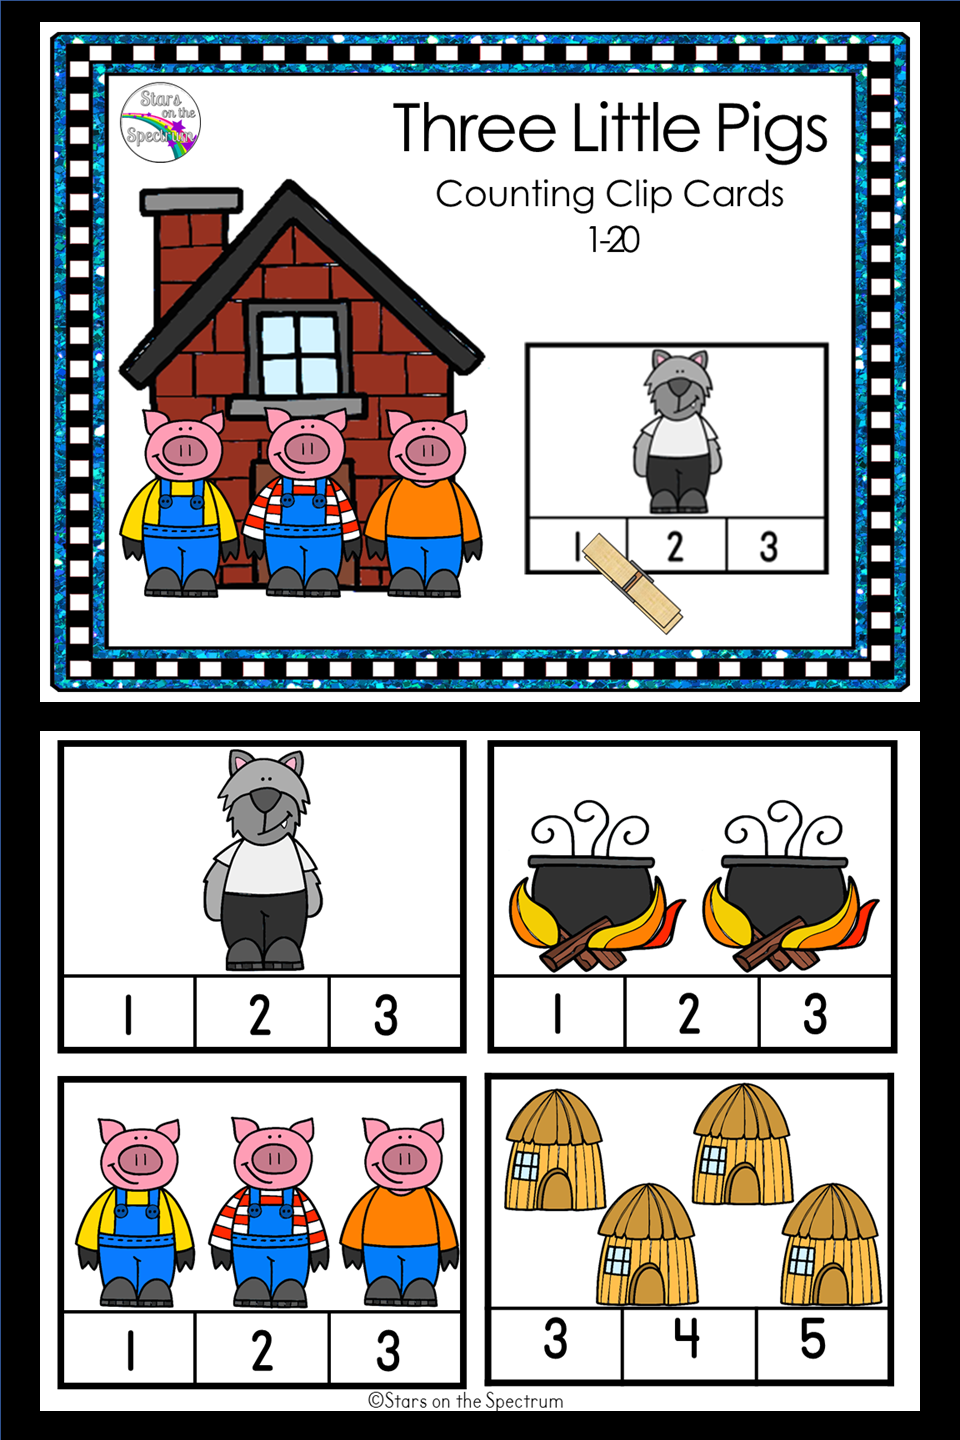 Three Little Pigs Counting Clip Cards 1 20 Little Pigs Three Little Pigs Counting Clip Cards [ 1440 x 960 Pixel ]